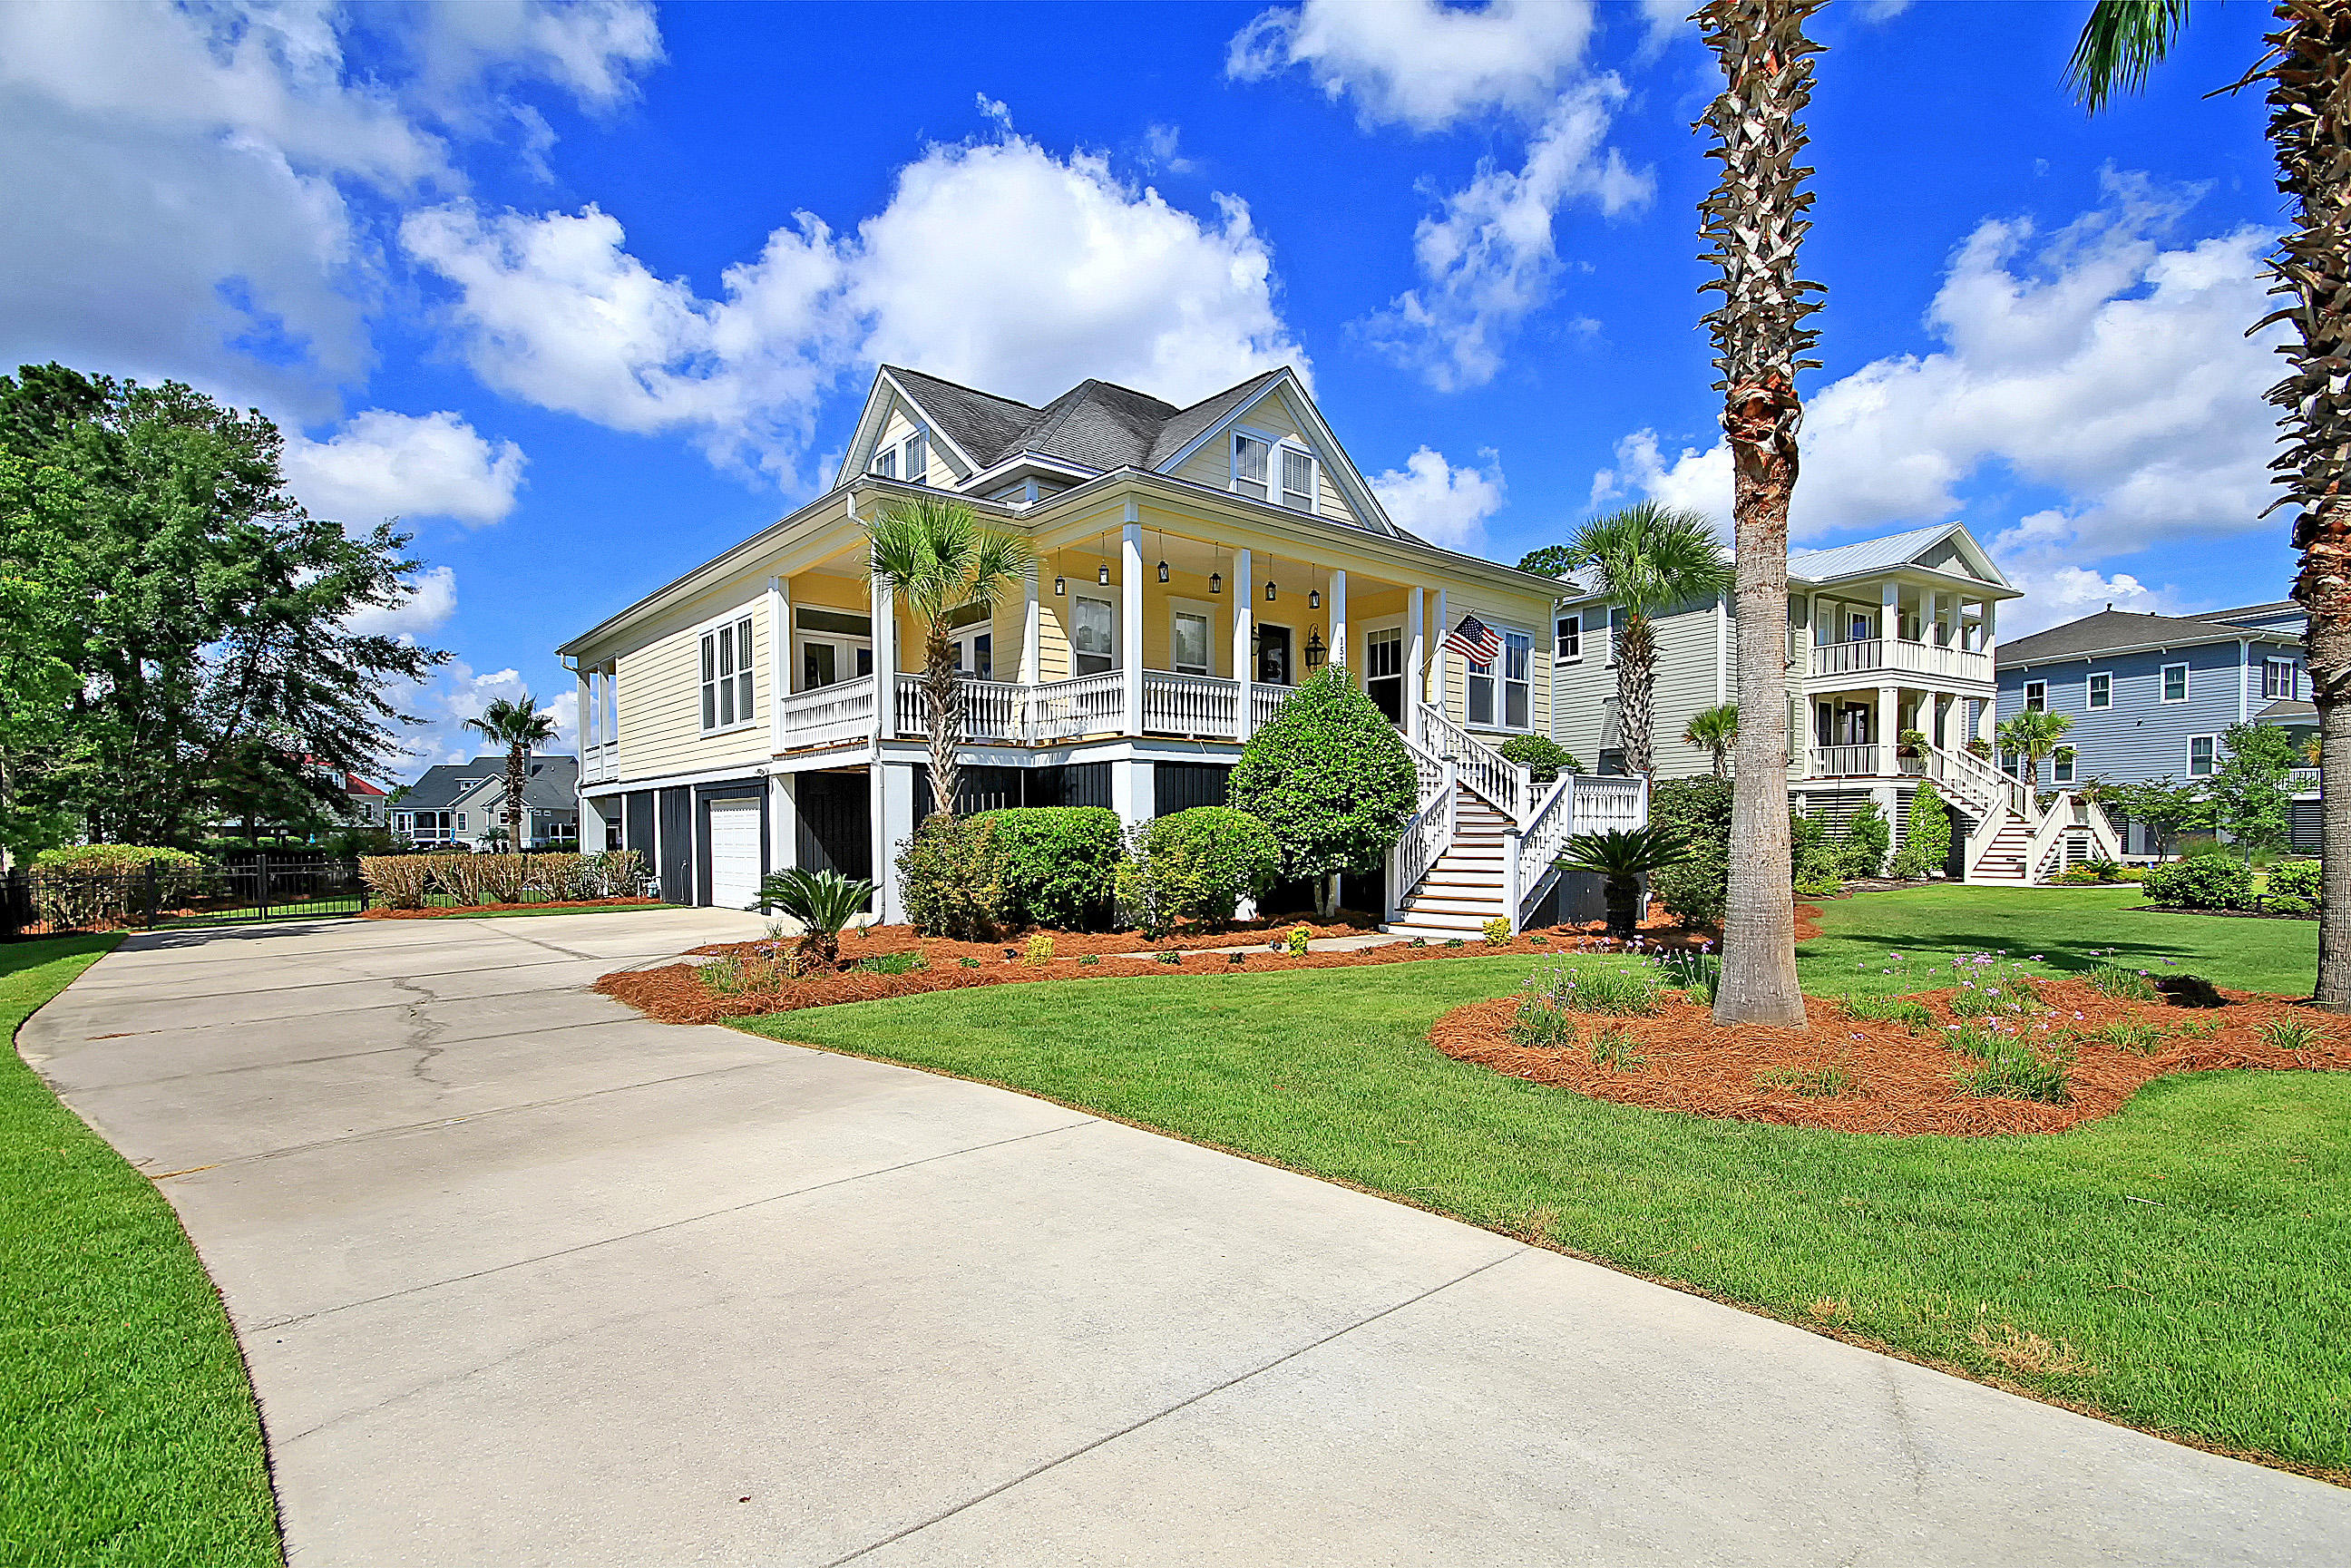 Rivertowne Country Club Homes For Sale - 1536 Rivertowne Country Club, Mount Pleasant, SC - 19